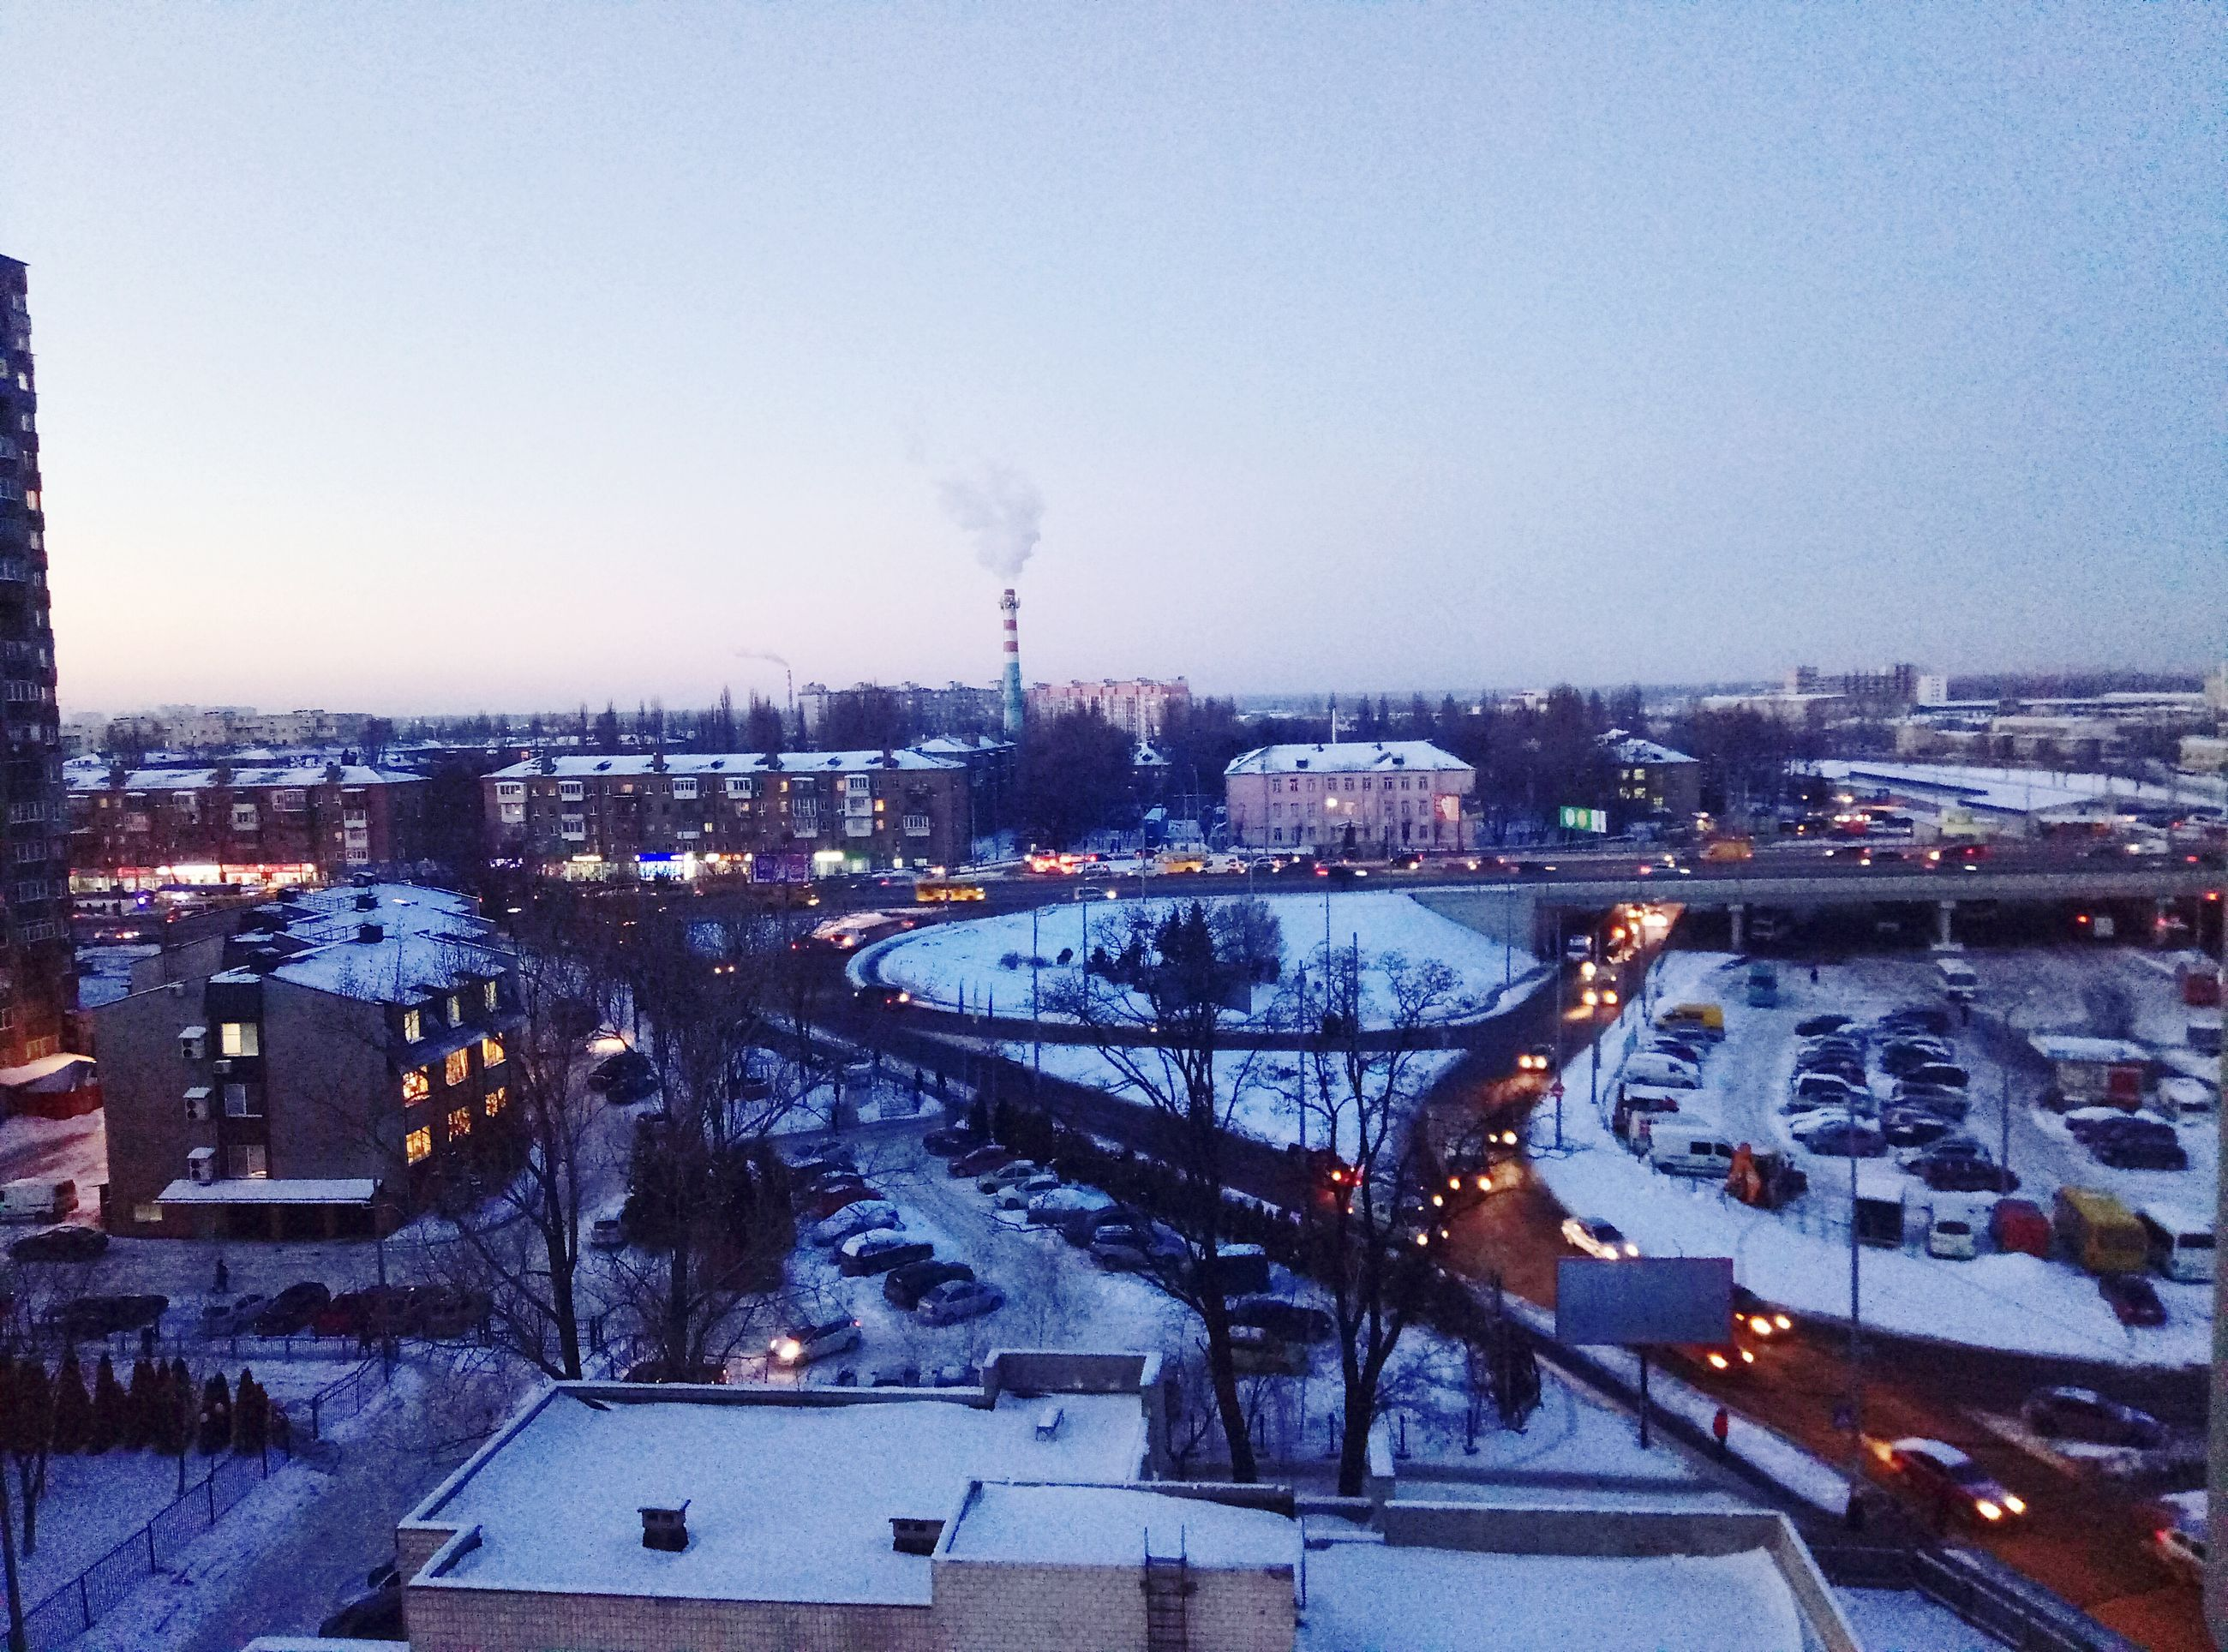 transportation, city, high angle view, architecture, sky, building exterior, travel destinations, built structure, cityscape, winter, illuminated, outdoors, snow, tower, nature, traffic circle, rush hour, no people, snowing, day